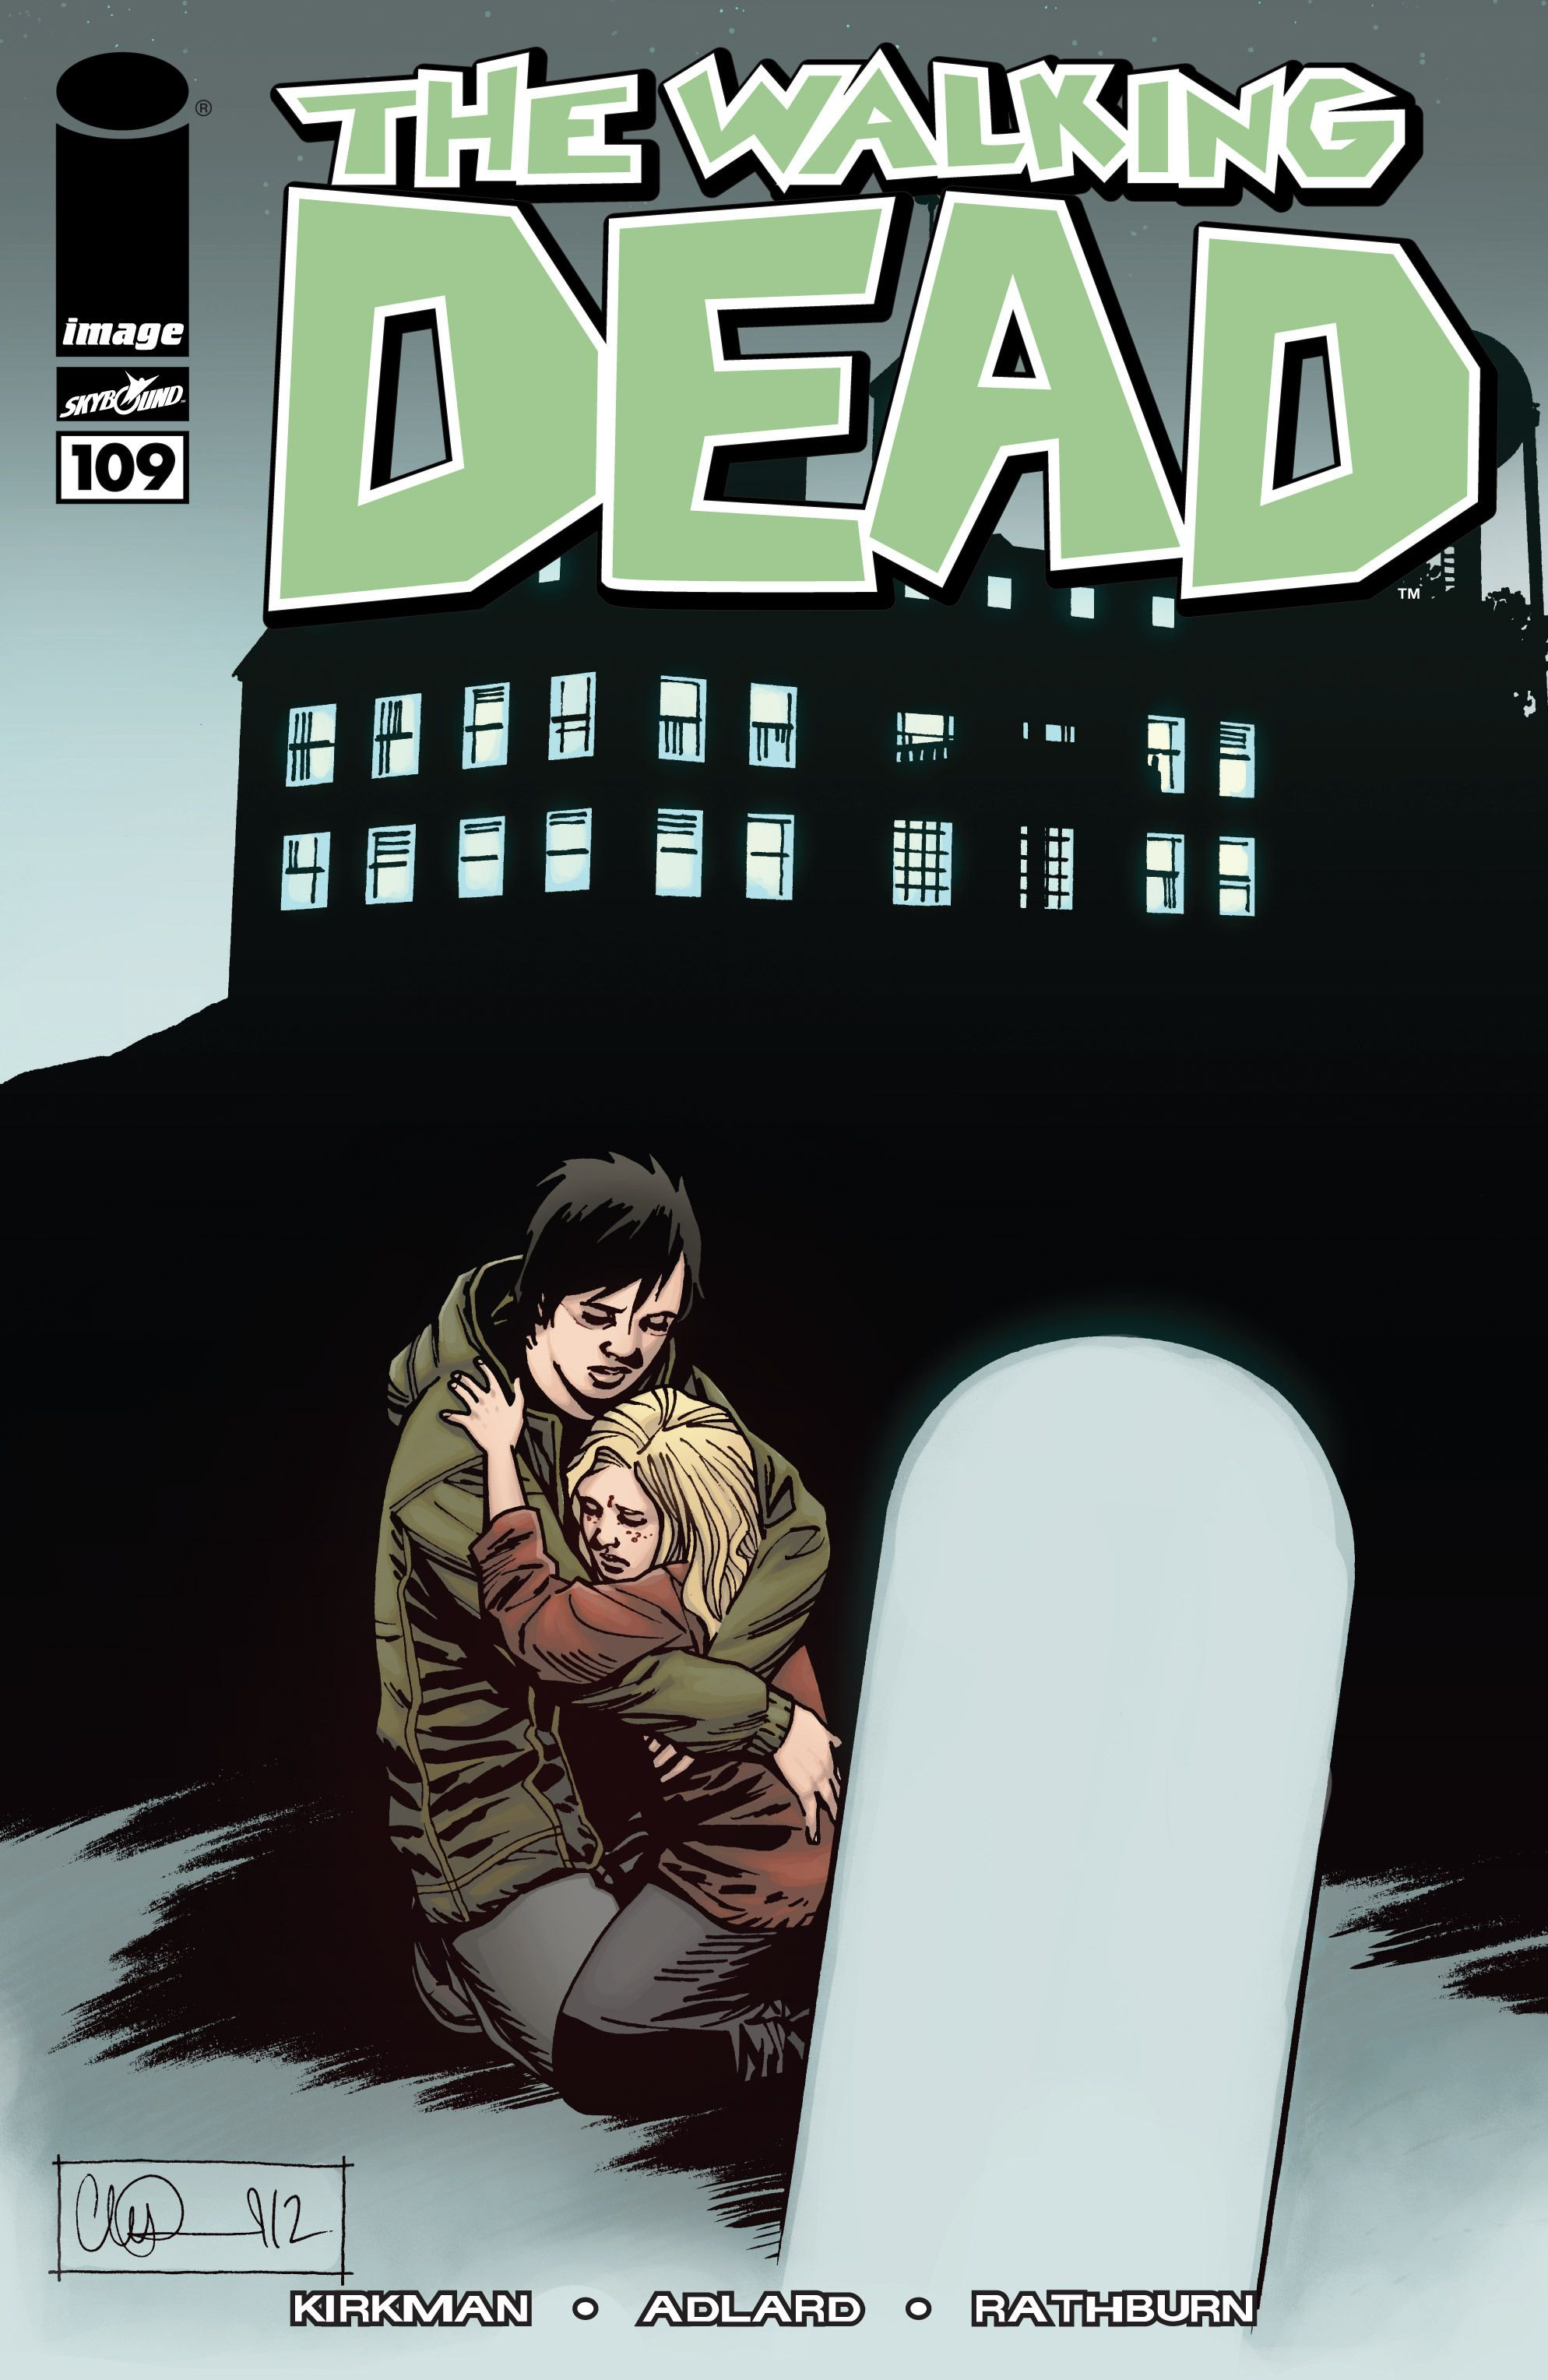 The Walking Dead #1-182 + Specials (2003-2018)